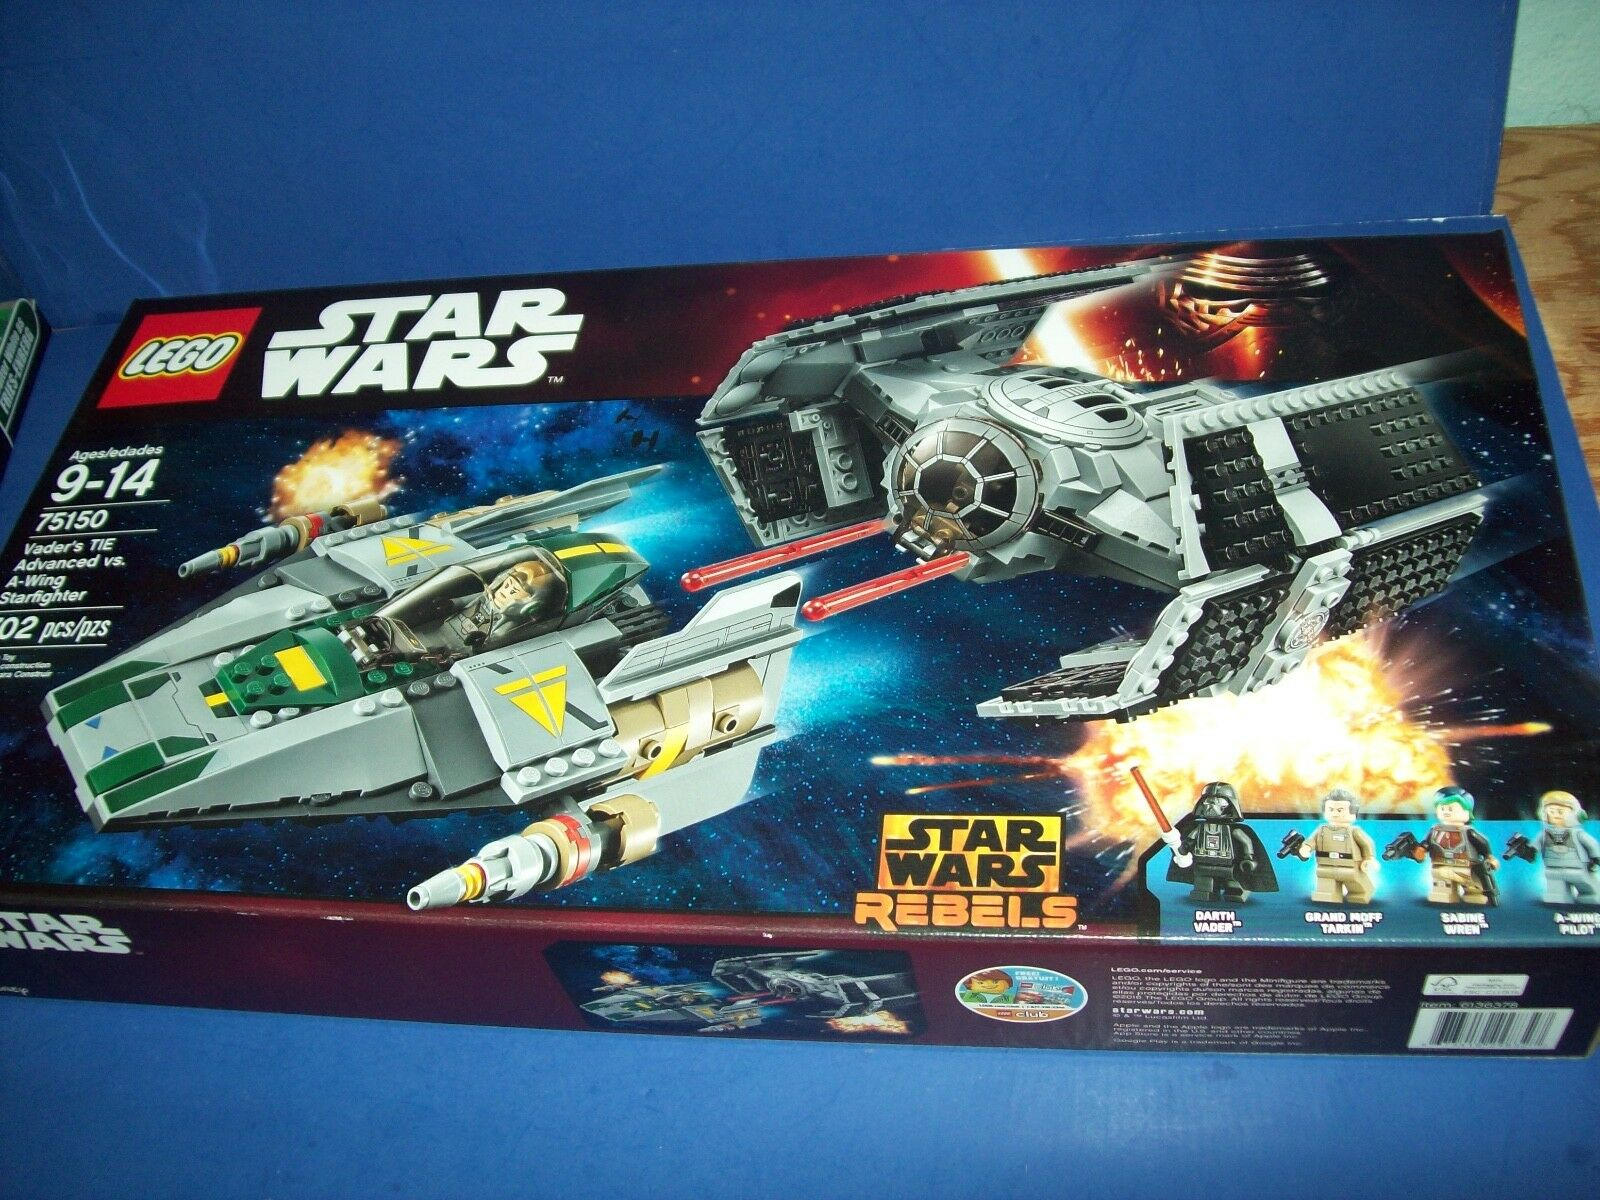 Lego Star Wars rebelles Vader's cravate Advanced vs A-Wing Starfighter 75150 nouveau NEUF